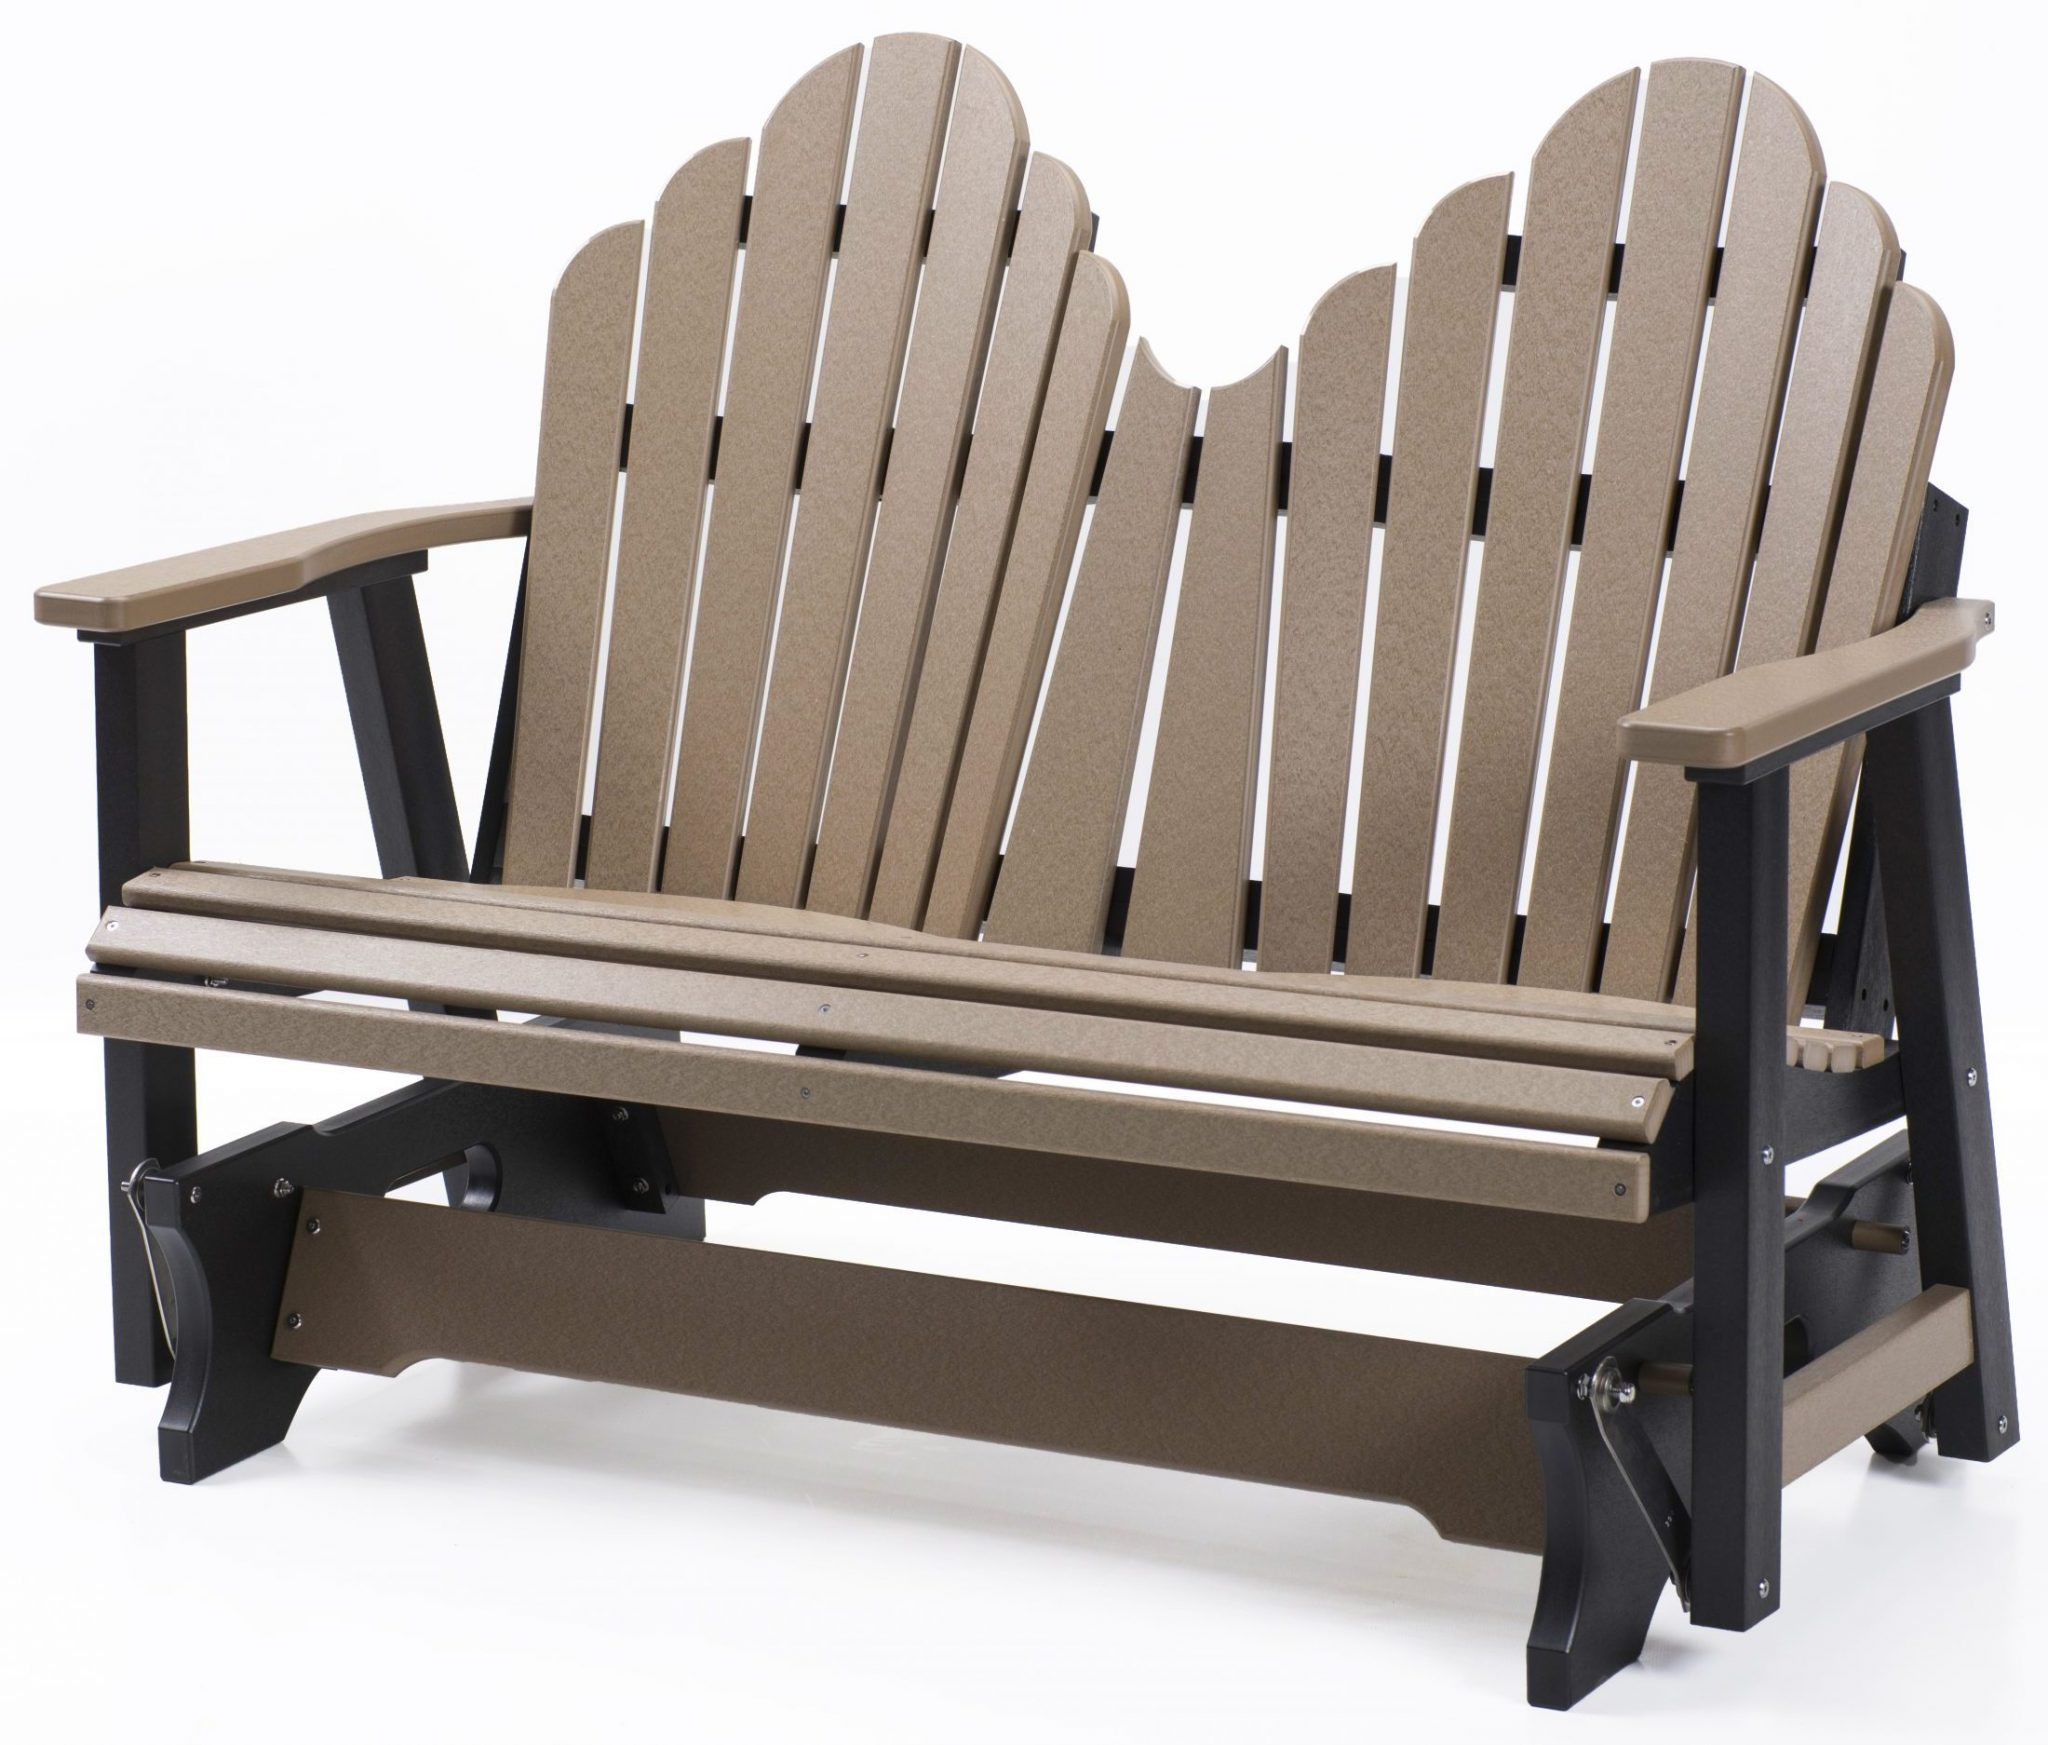 Rustic Hickory And Oak Double Glider Pertaining To Indoor/outdoor Double Glider Benches (View 22 of 25)